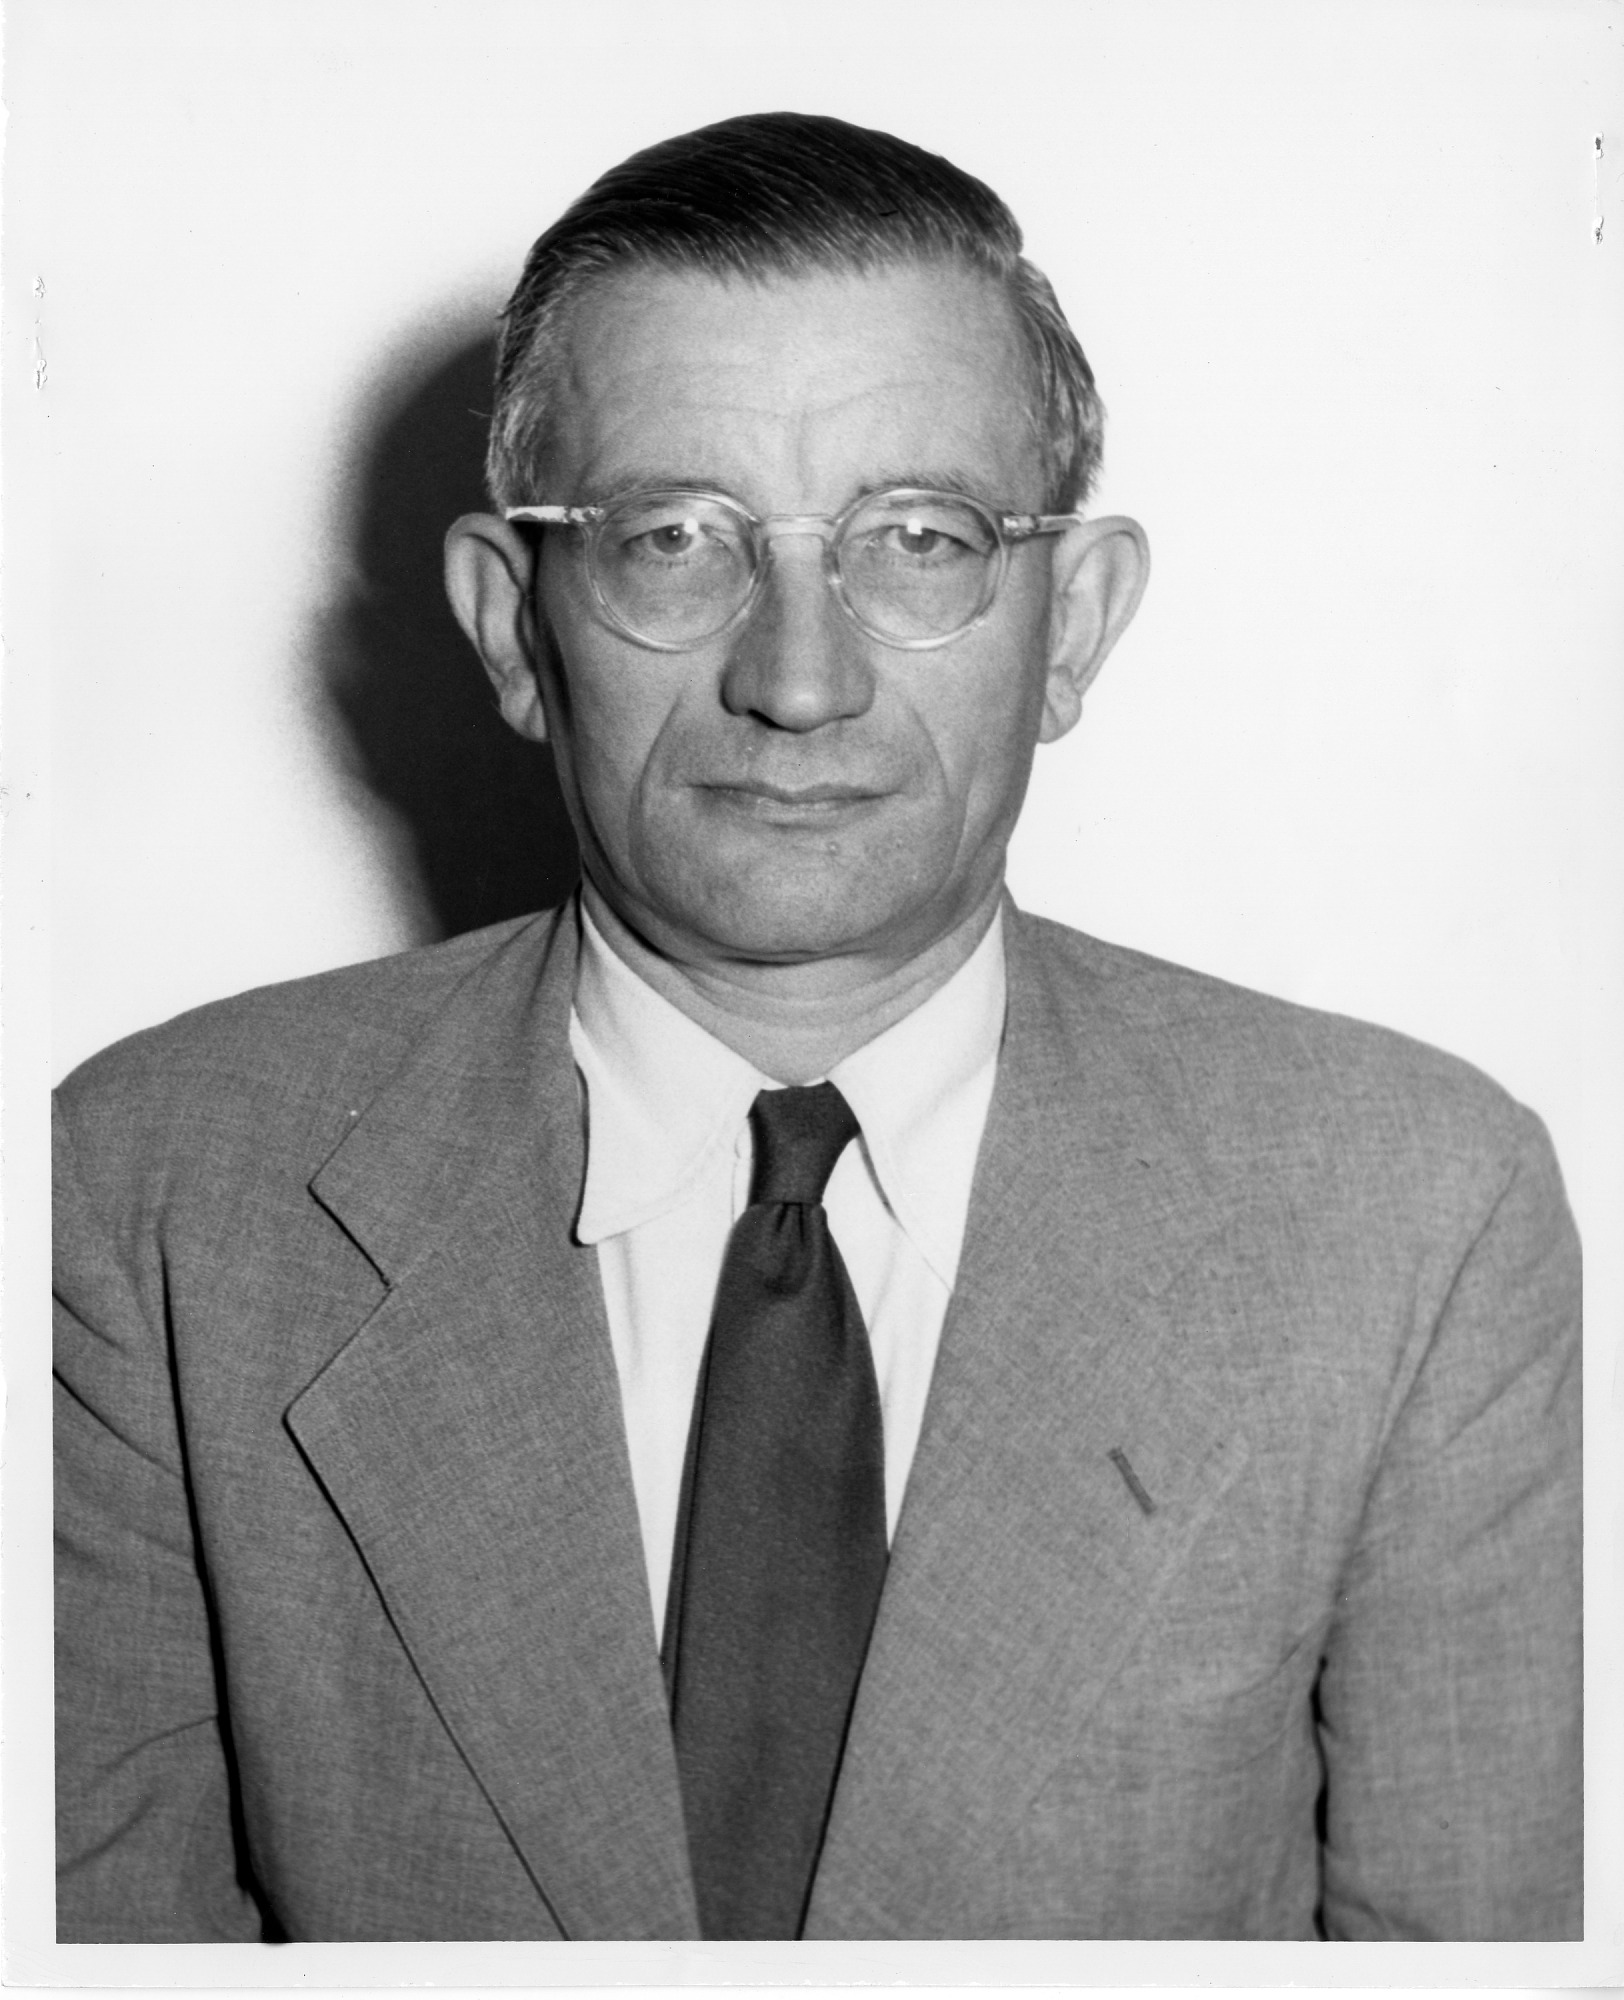 Hans-Georg Clamann (1902-1980), Smithsonian Institution Archives, SIA Acc. 90-105 [SIA2008-0110].